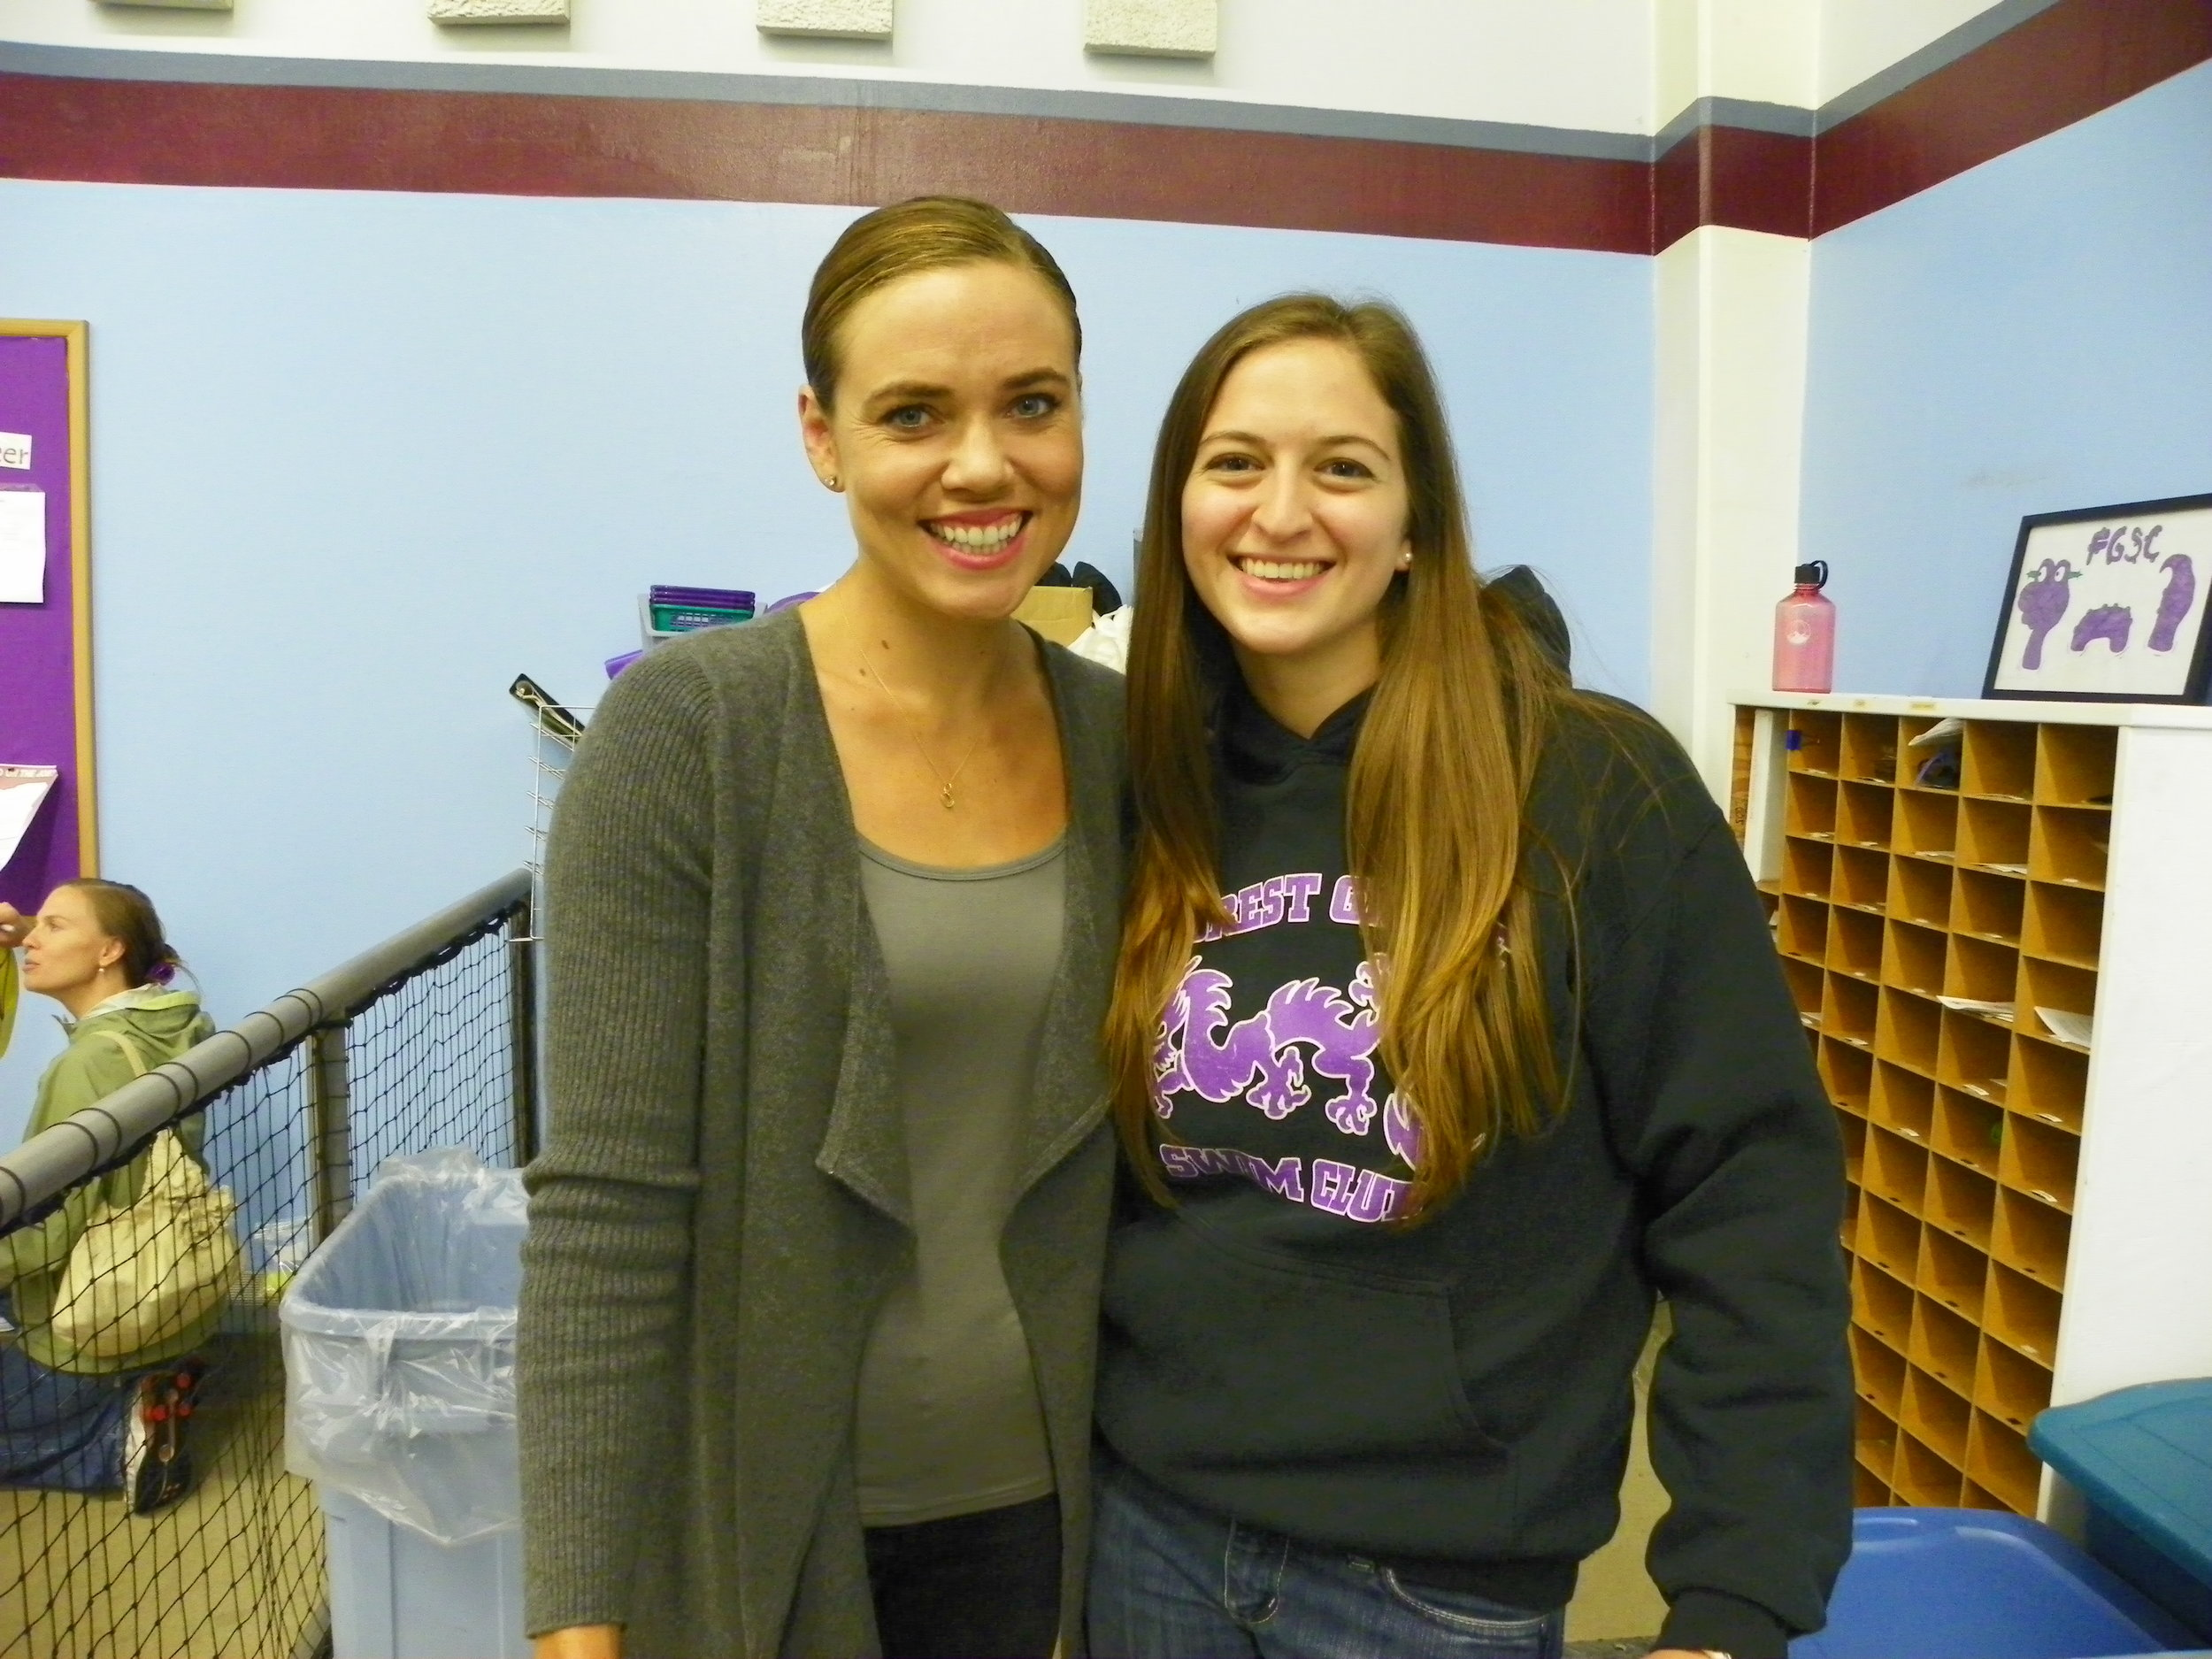 Natalie Coughlin and I in OR